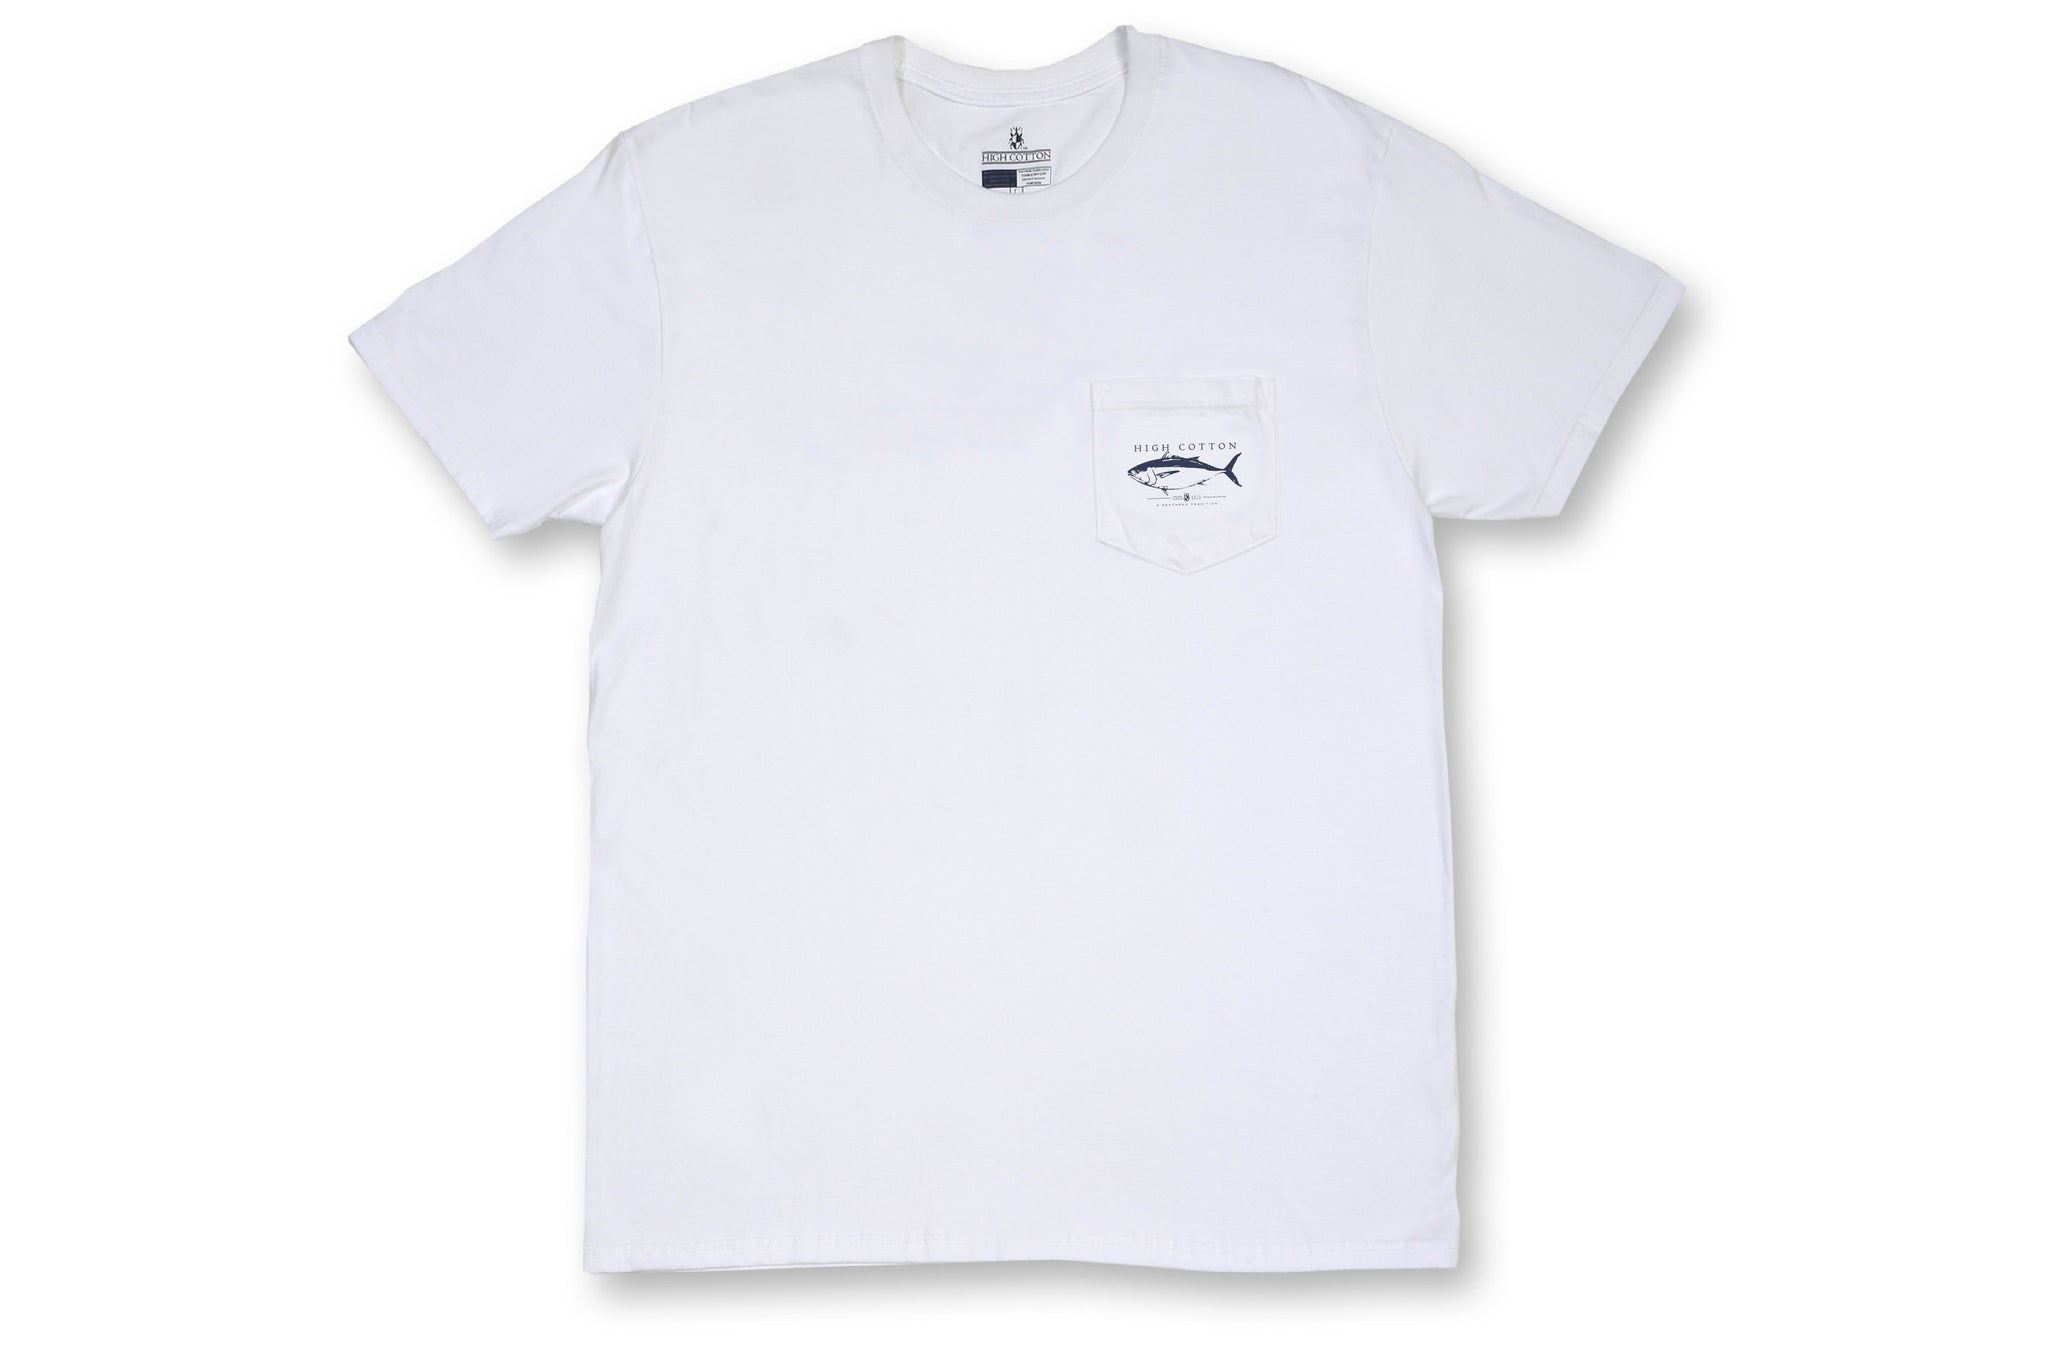 764307e0 Tuna Pocket Tee - Classic White - High Cotton